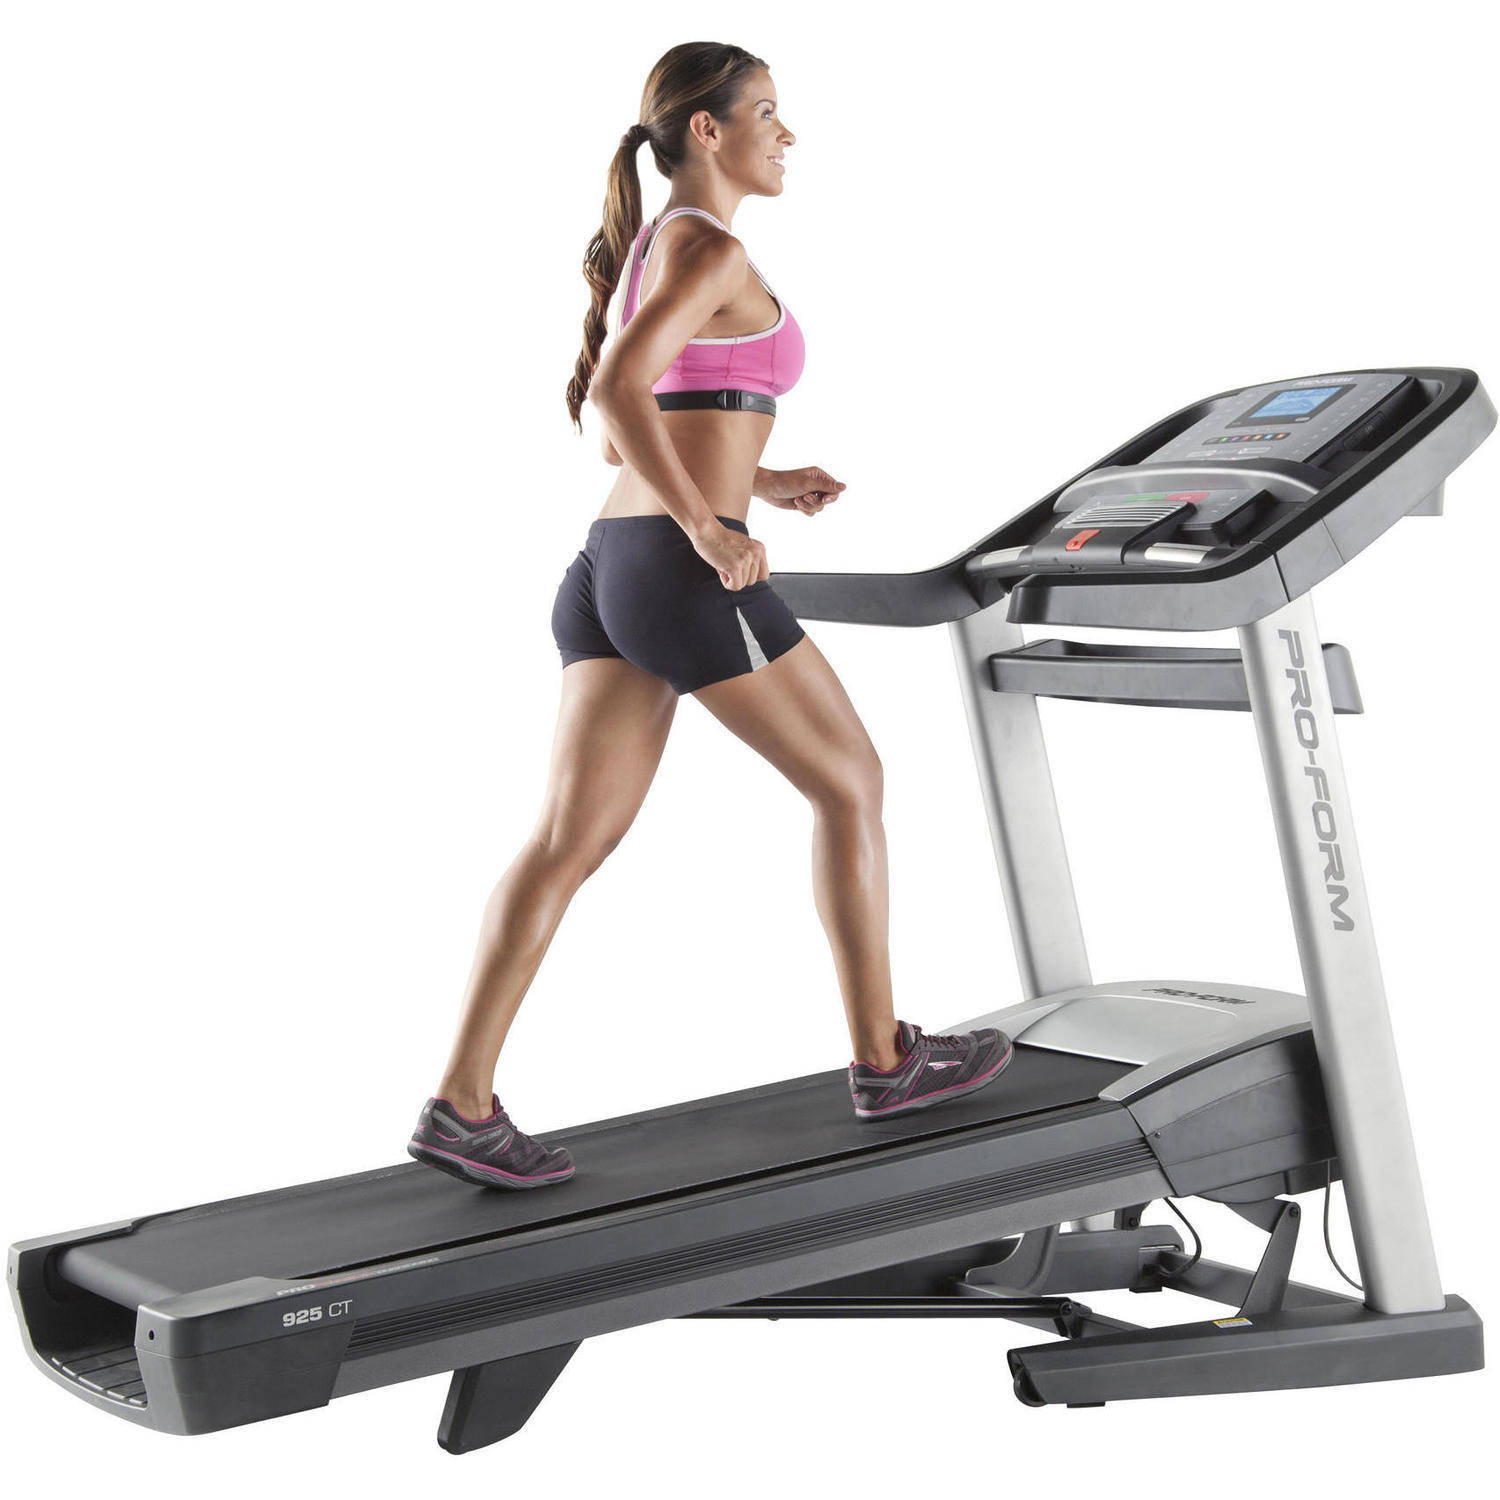 "ProForm 925 CT Treadmill with 15% Auto Incline, 7"" Display & 325 lb Capacity"